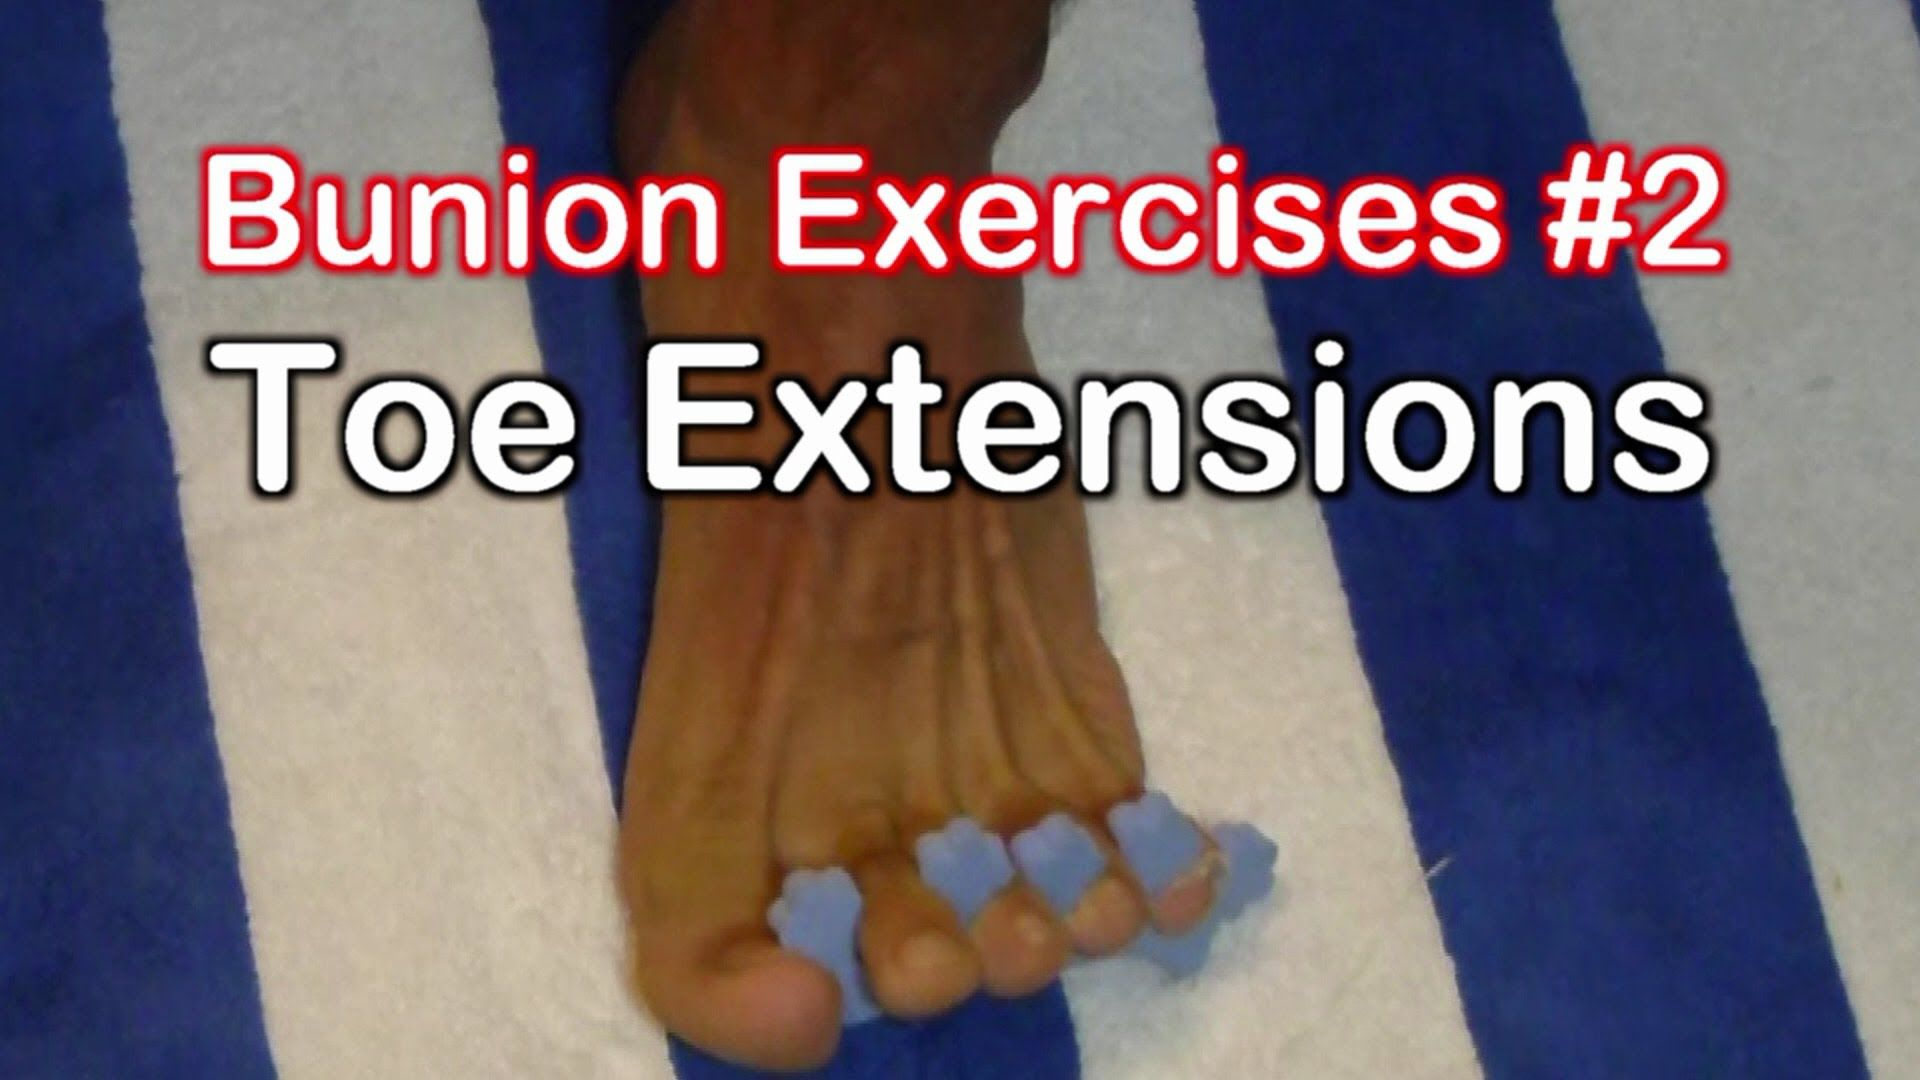 Bunion exercises 2 toe extension exercise for bunions